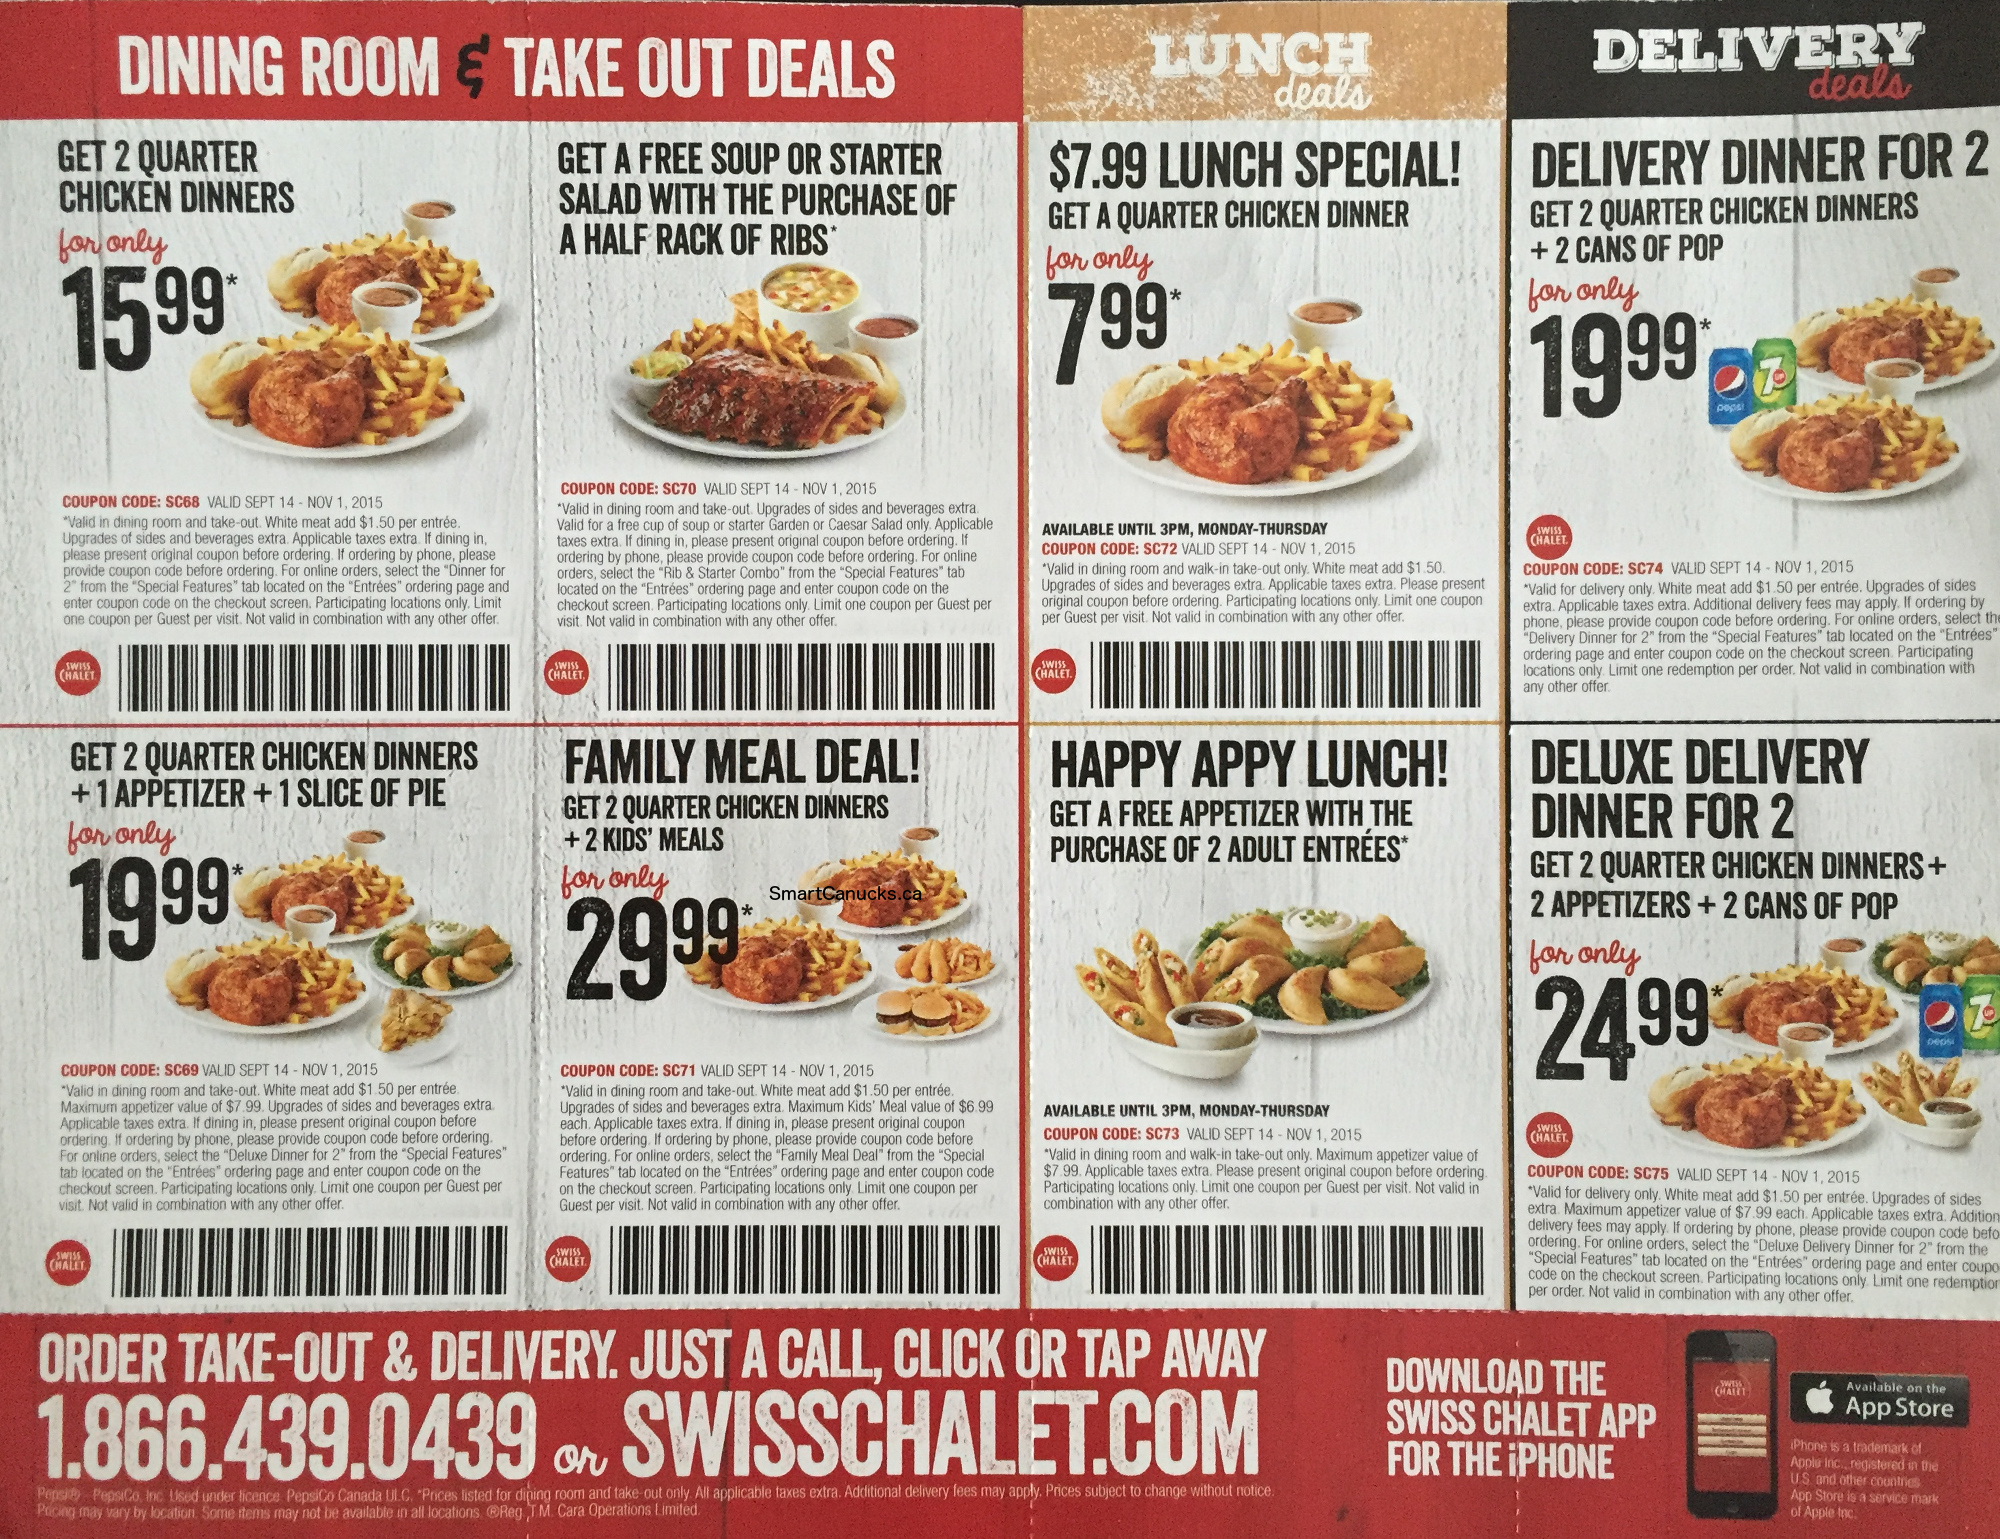 swiss chalet toronto coupon code